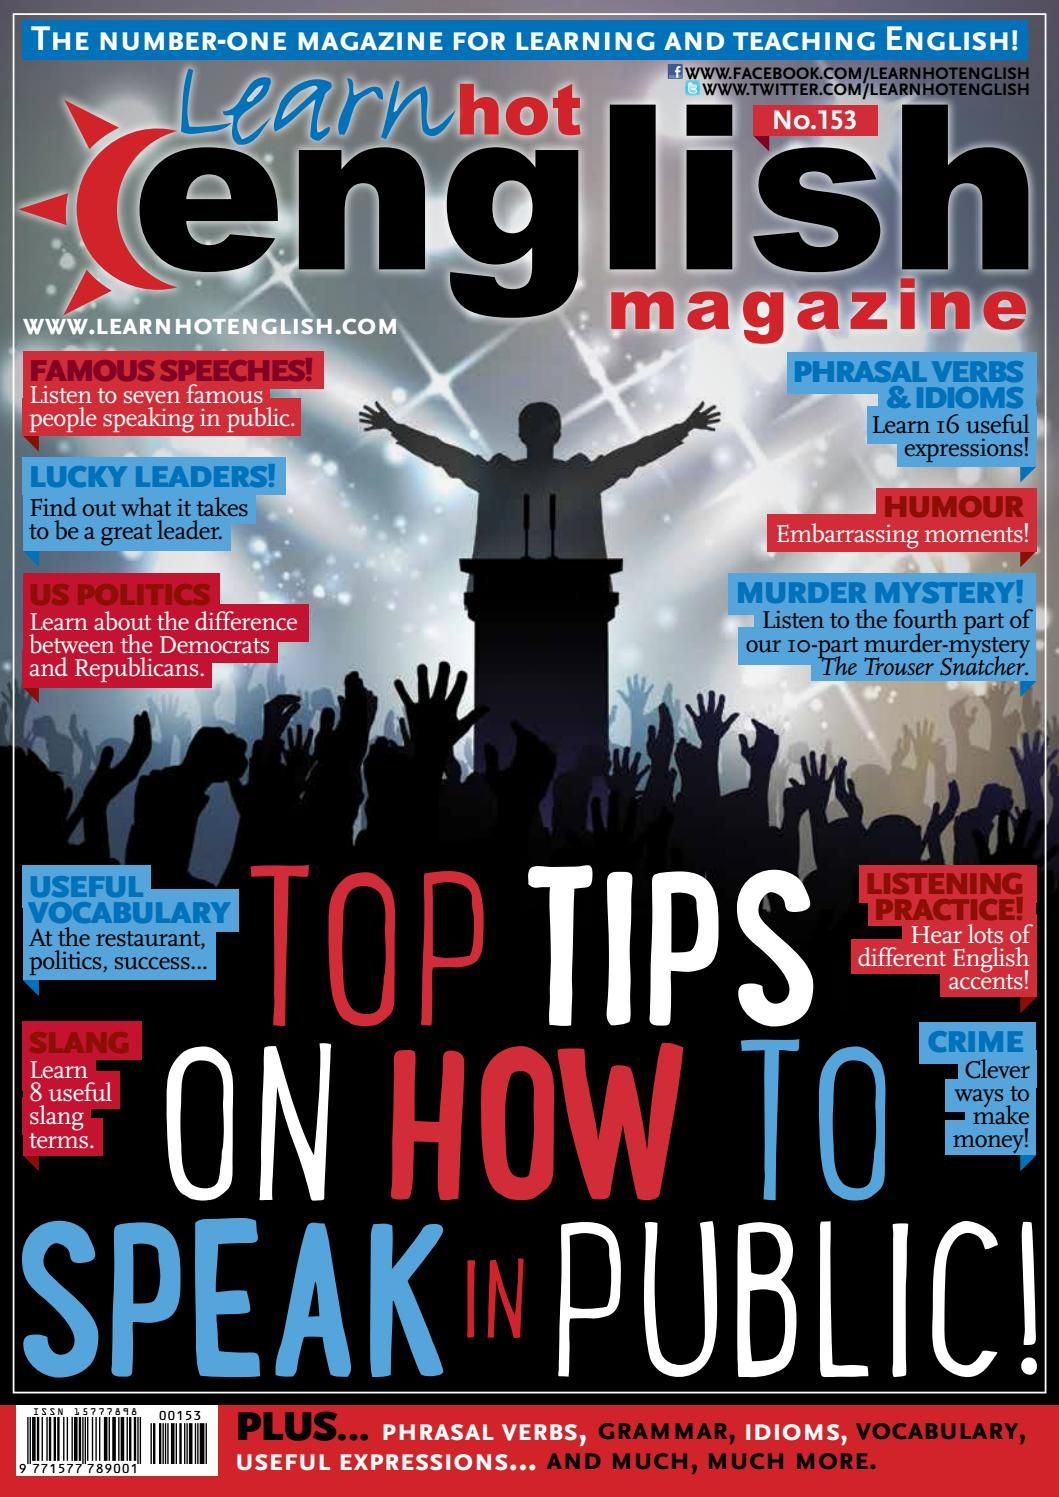 Libros Para Hablar En Publico Top Tips How To Speak In Public 2015 Inglés Aprender